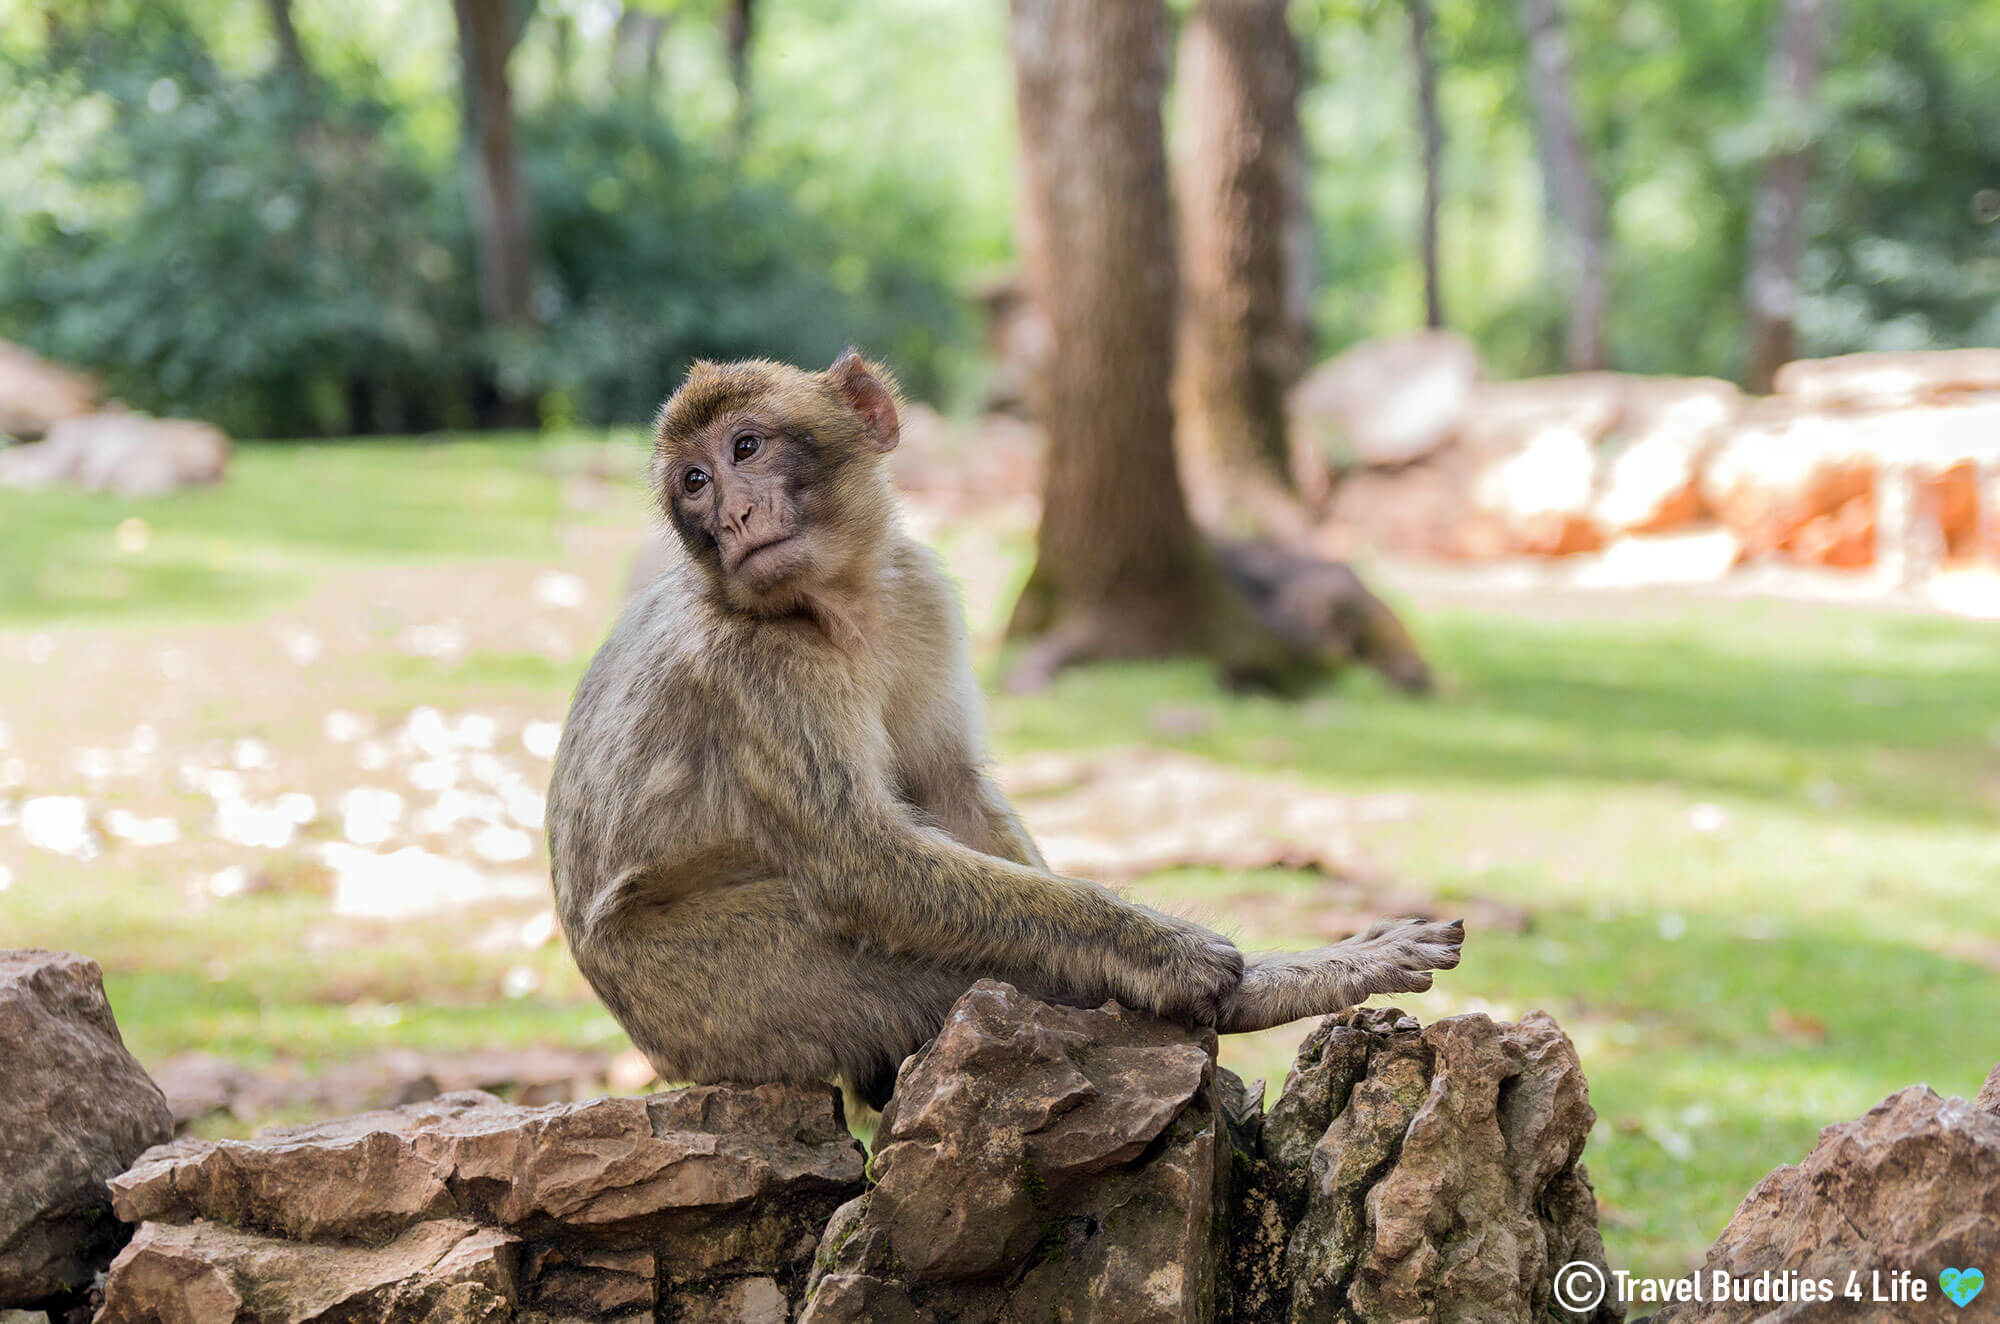 A Mischievous Baby Barbary Macaque Looking to Cause some Trouble in the Rocamadour Foret des Singes, Southern France, Europe